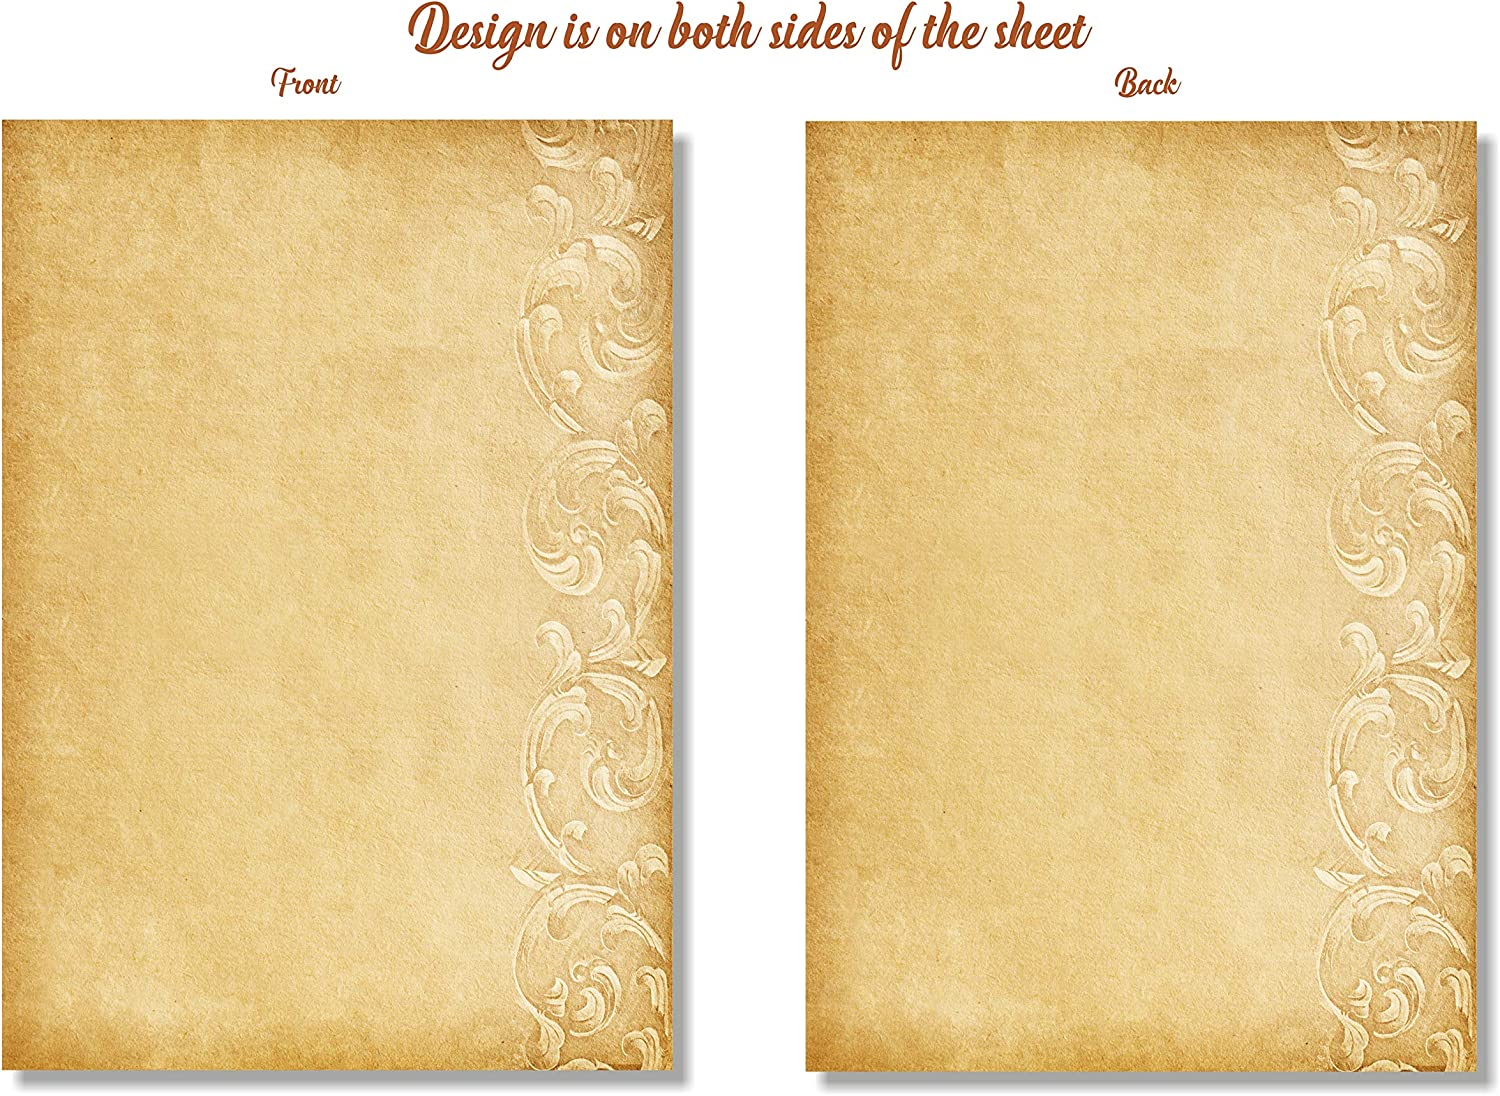 120gsm A4 Size 25 Sheets Prestige Vintage Looking Victorian Old Style Paper